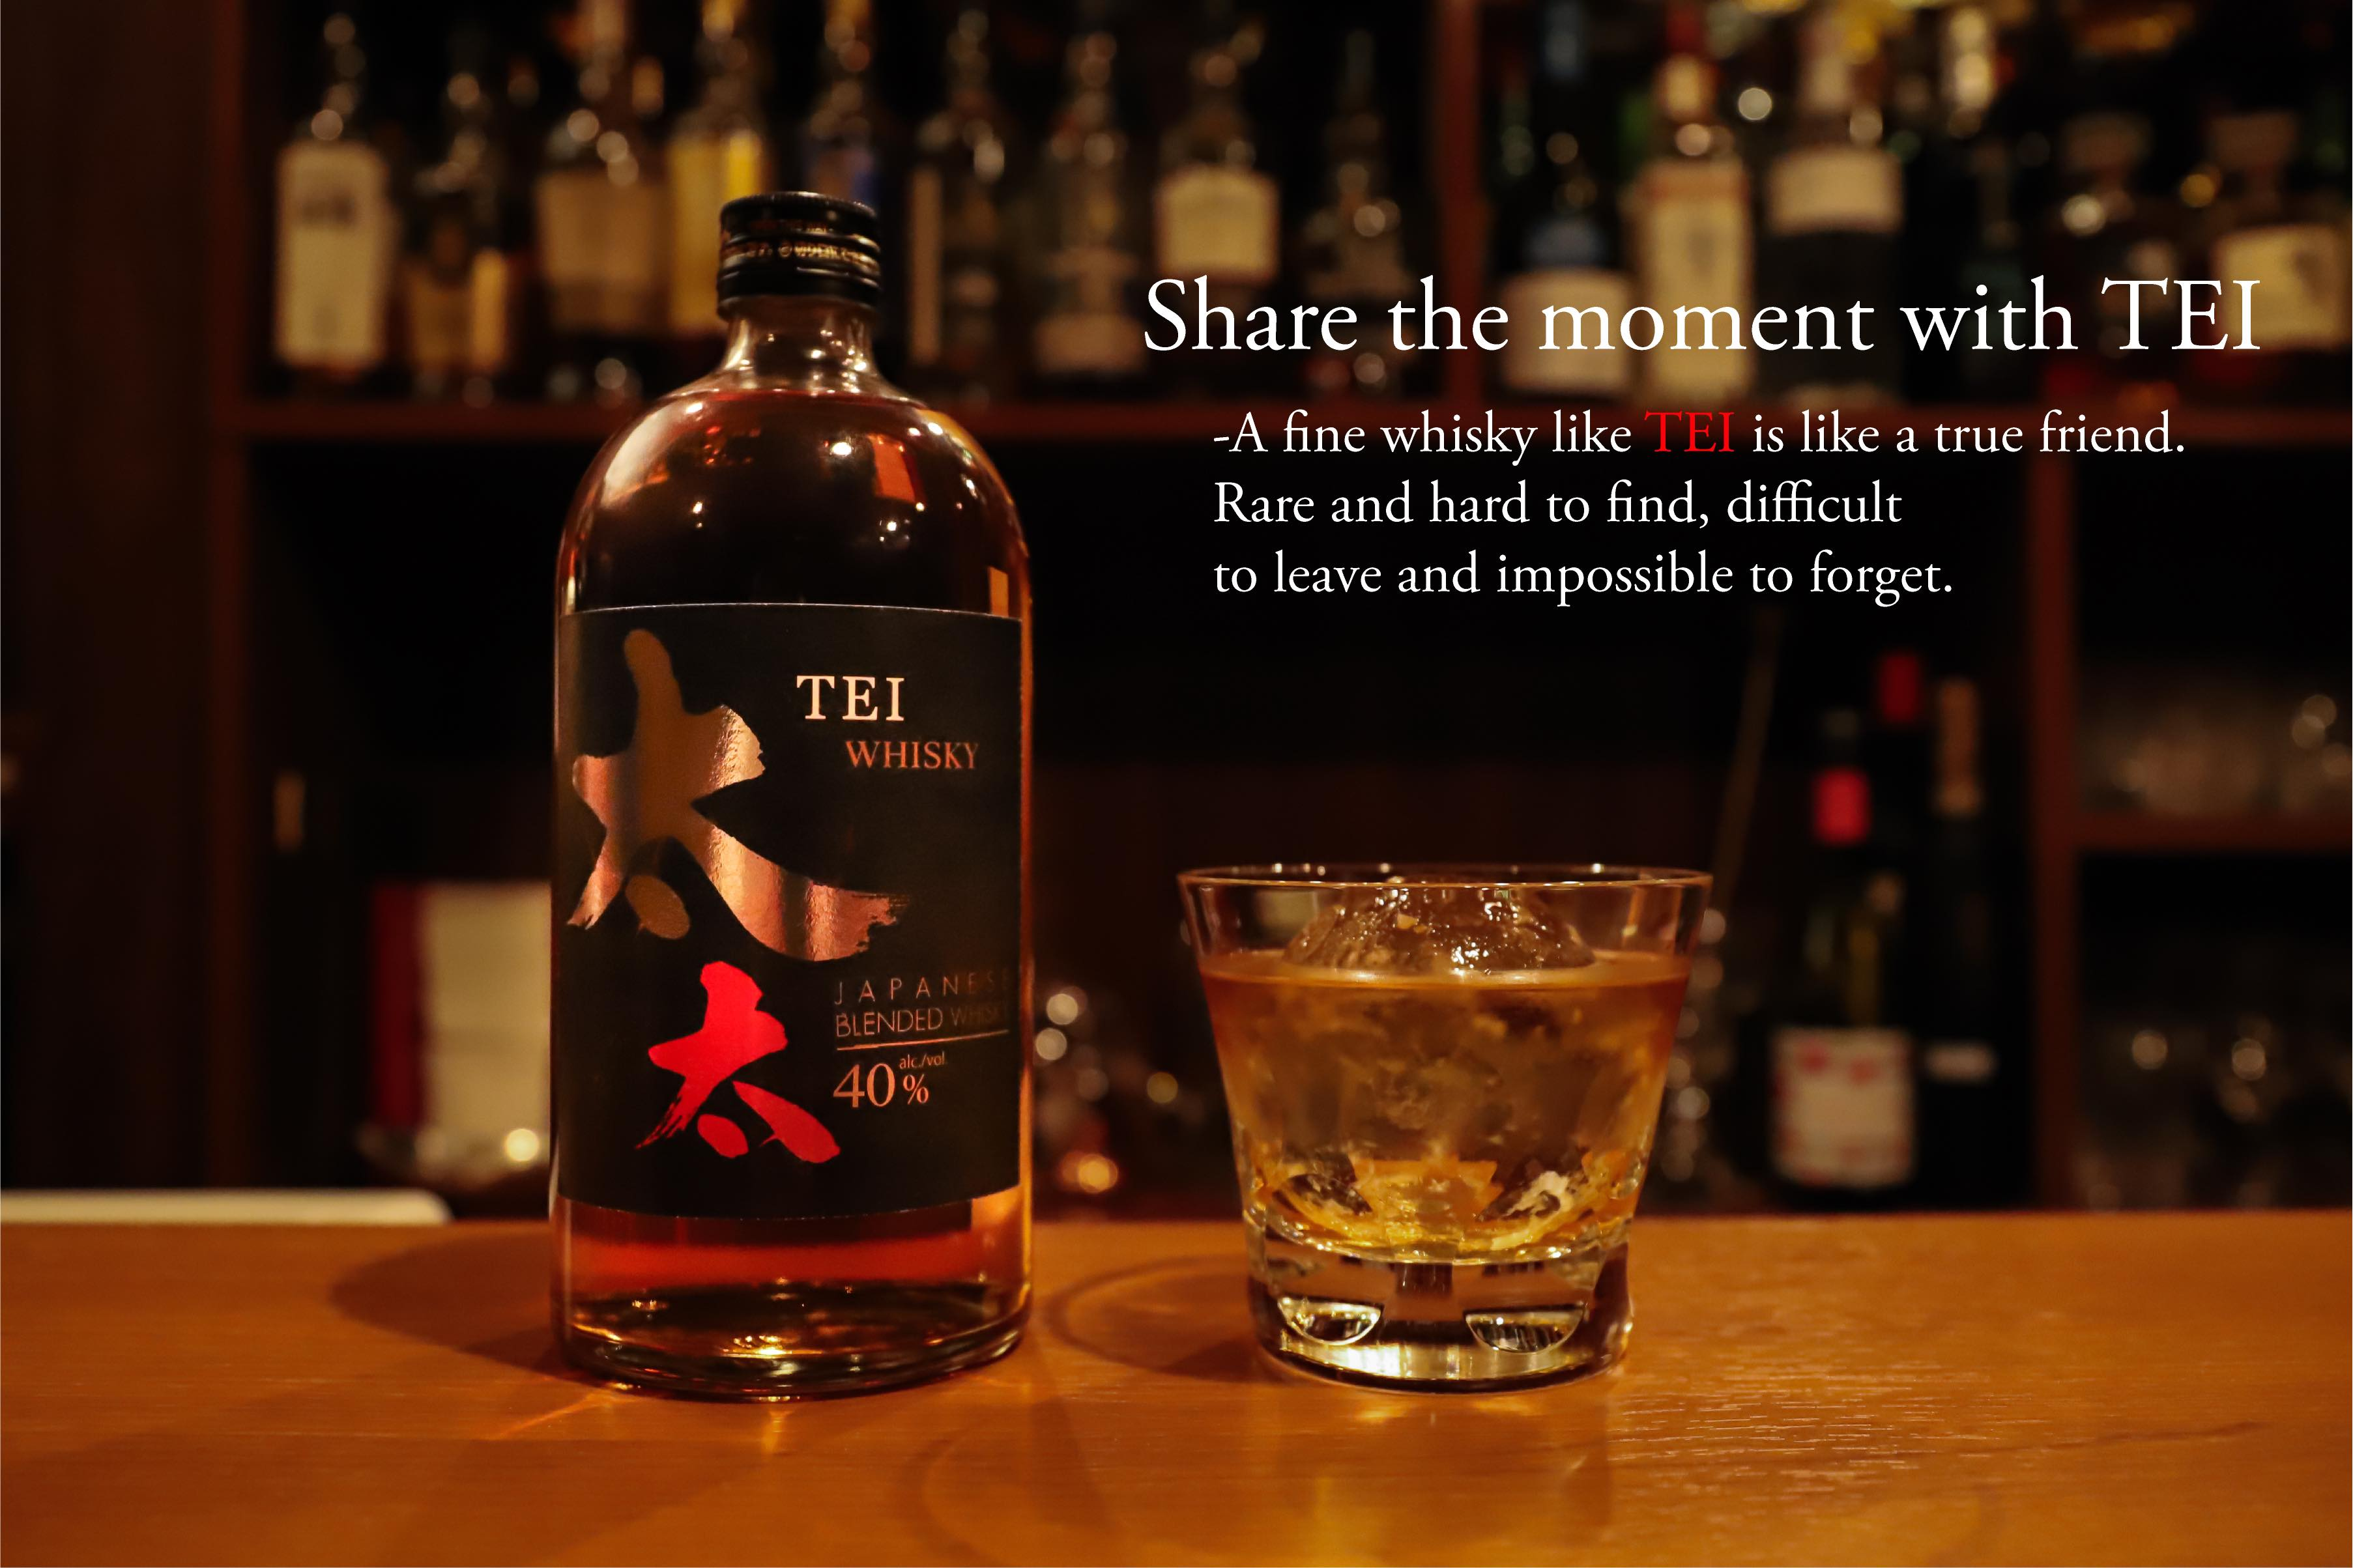 LIMITED! FREE Japanese Whisky Tasting - 7pm - 10pm, July 18